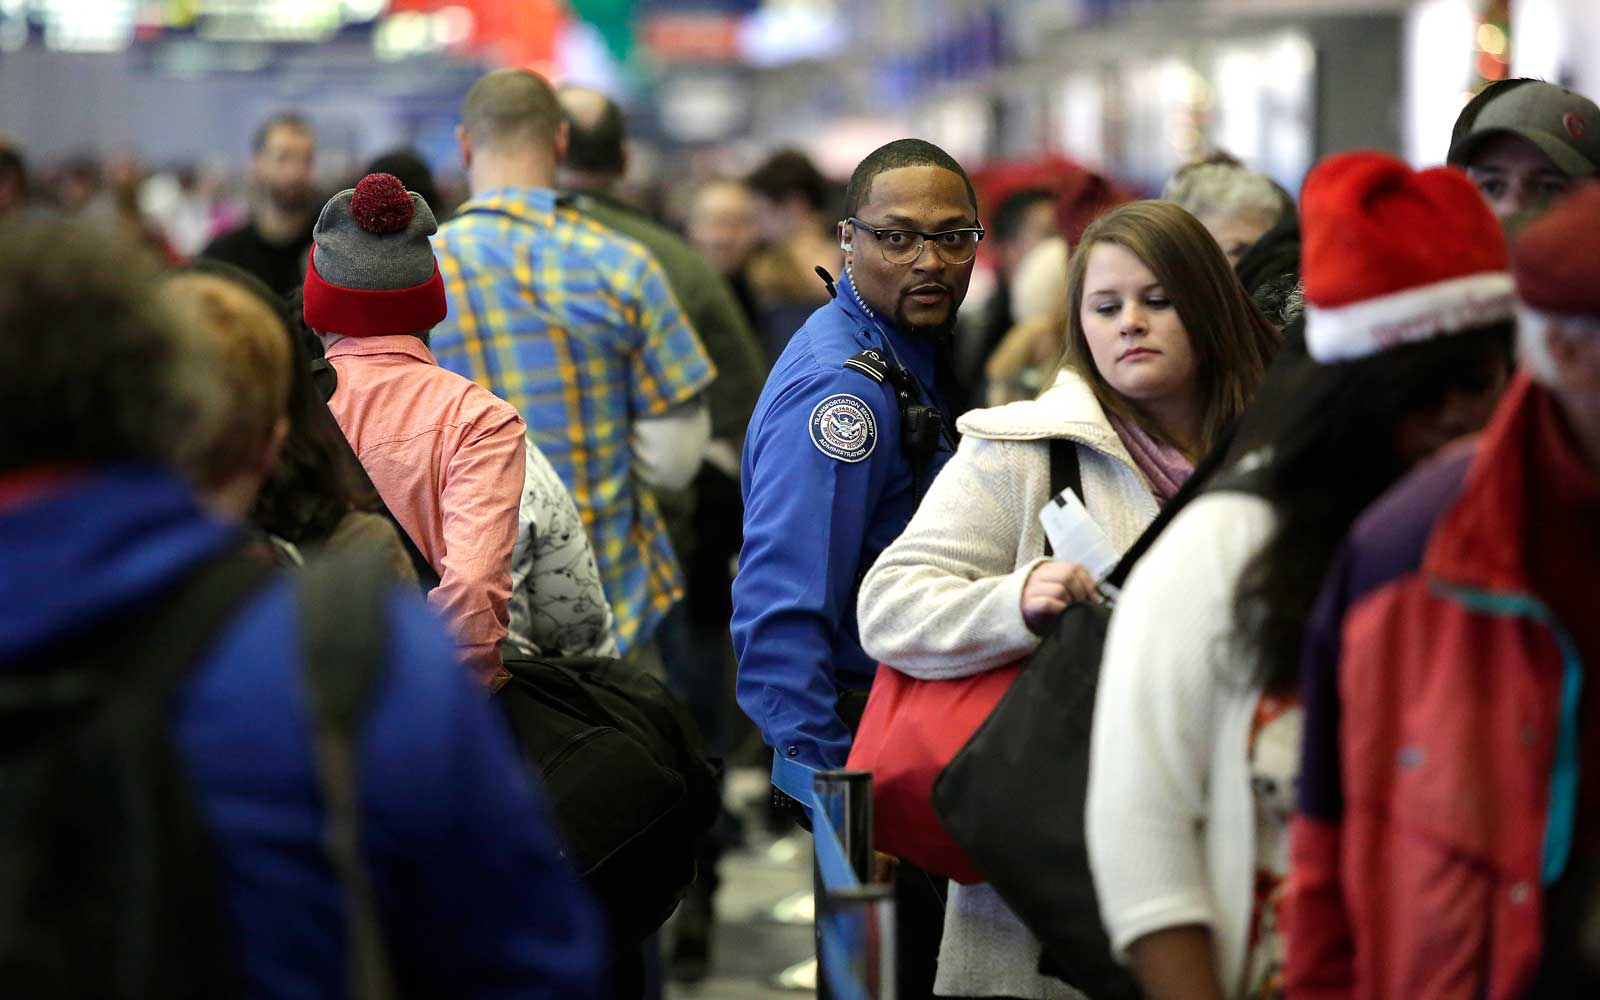 A TSA agent stands with travelers in the TSA security line at O'Hare International Airport